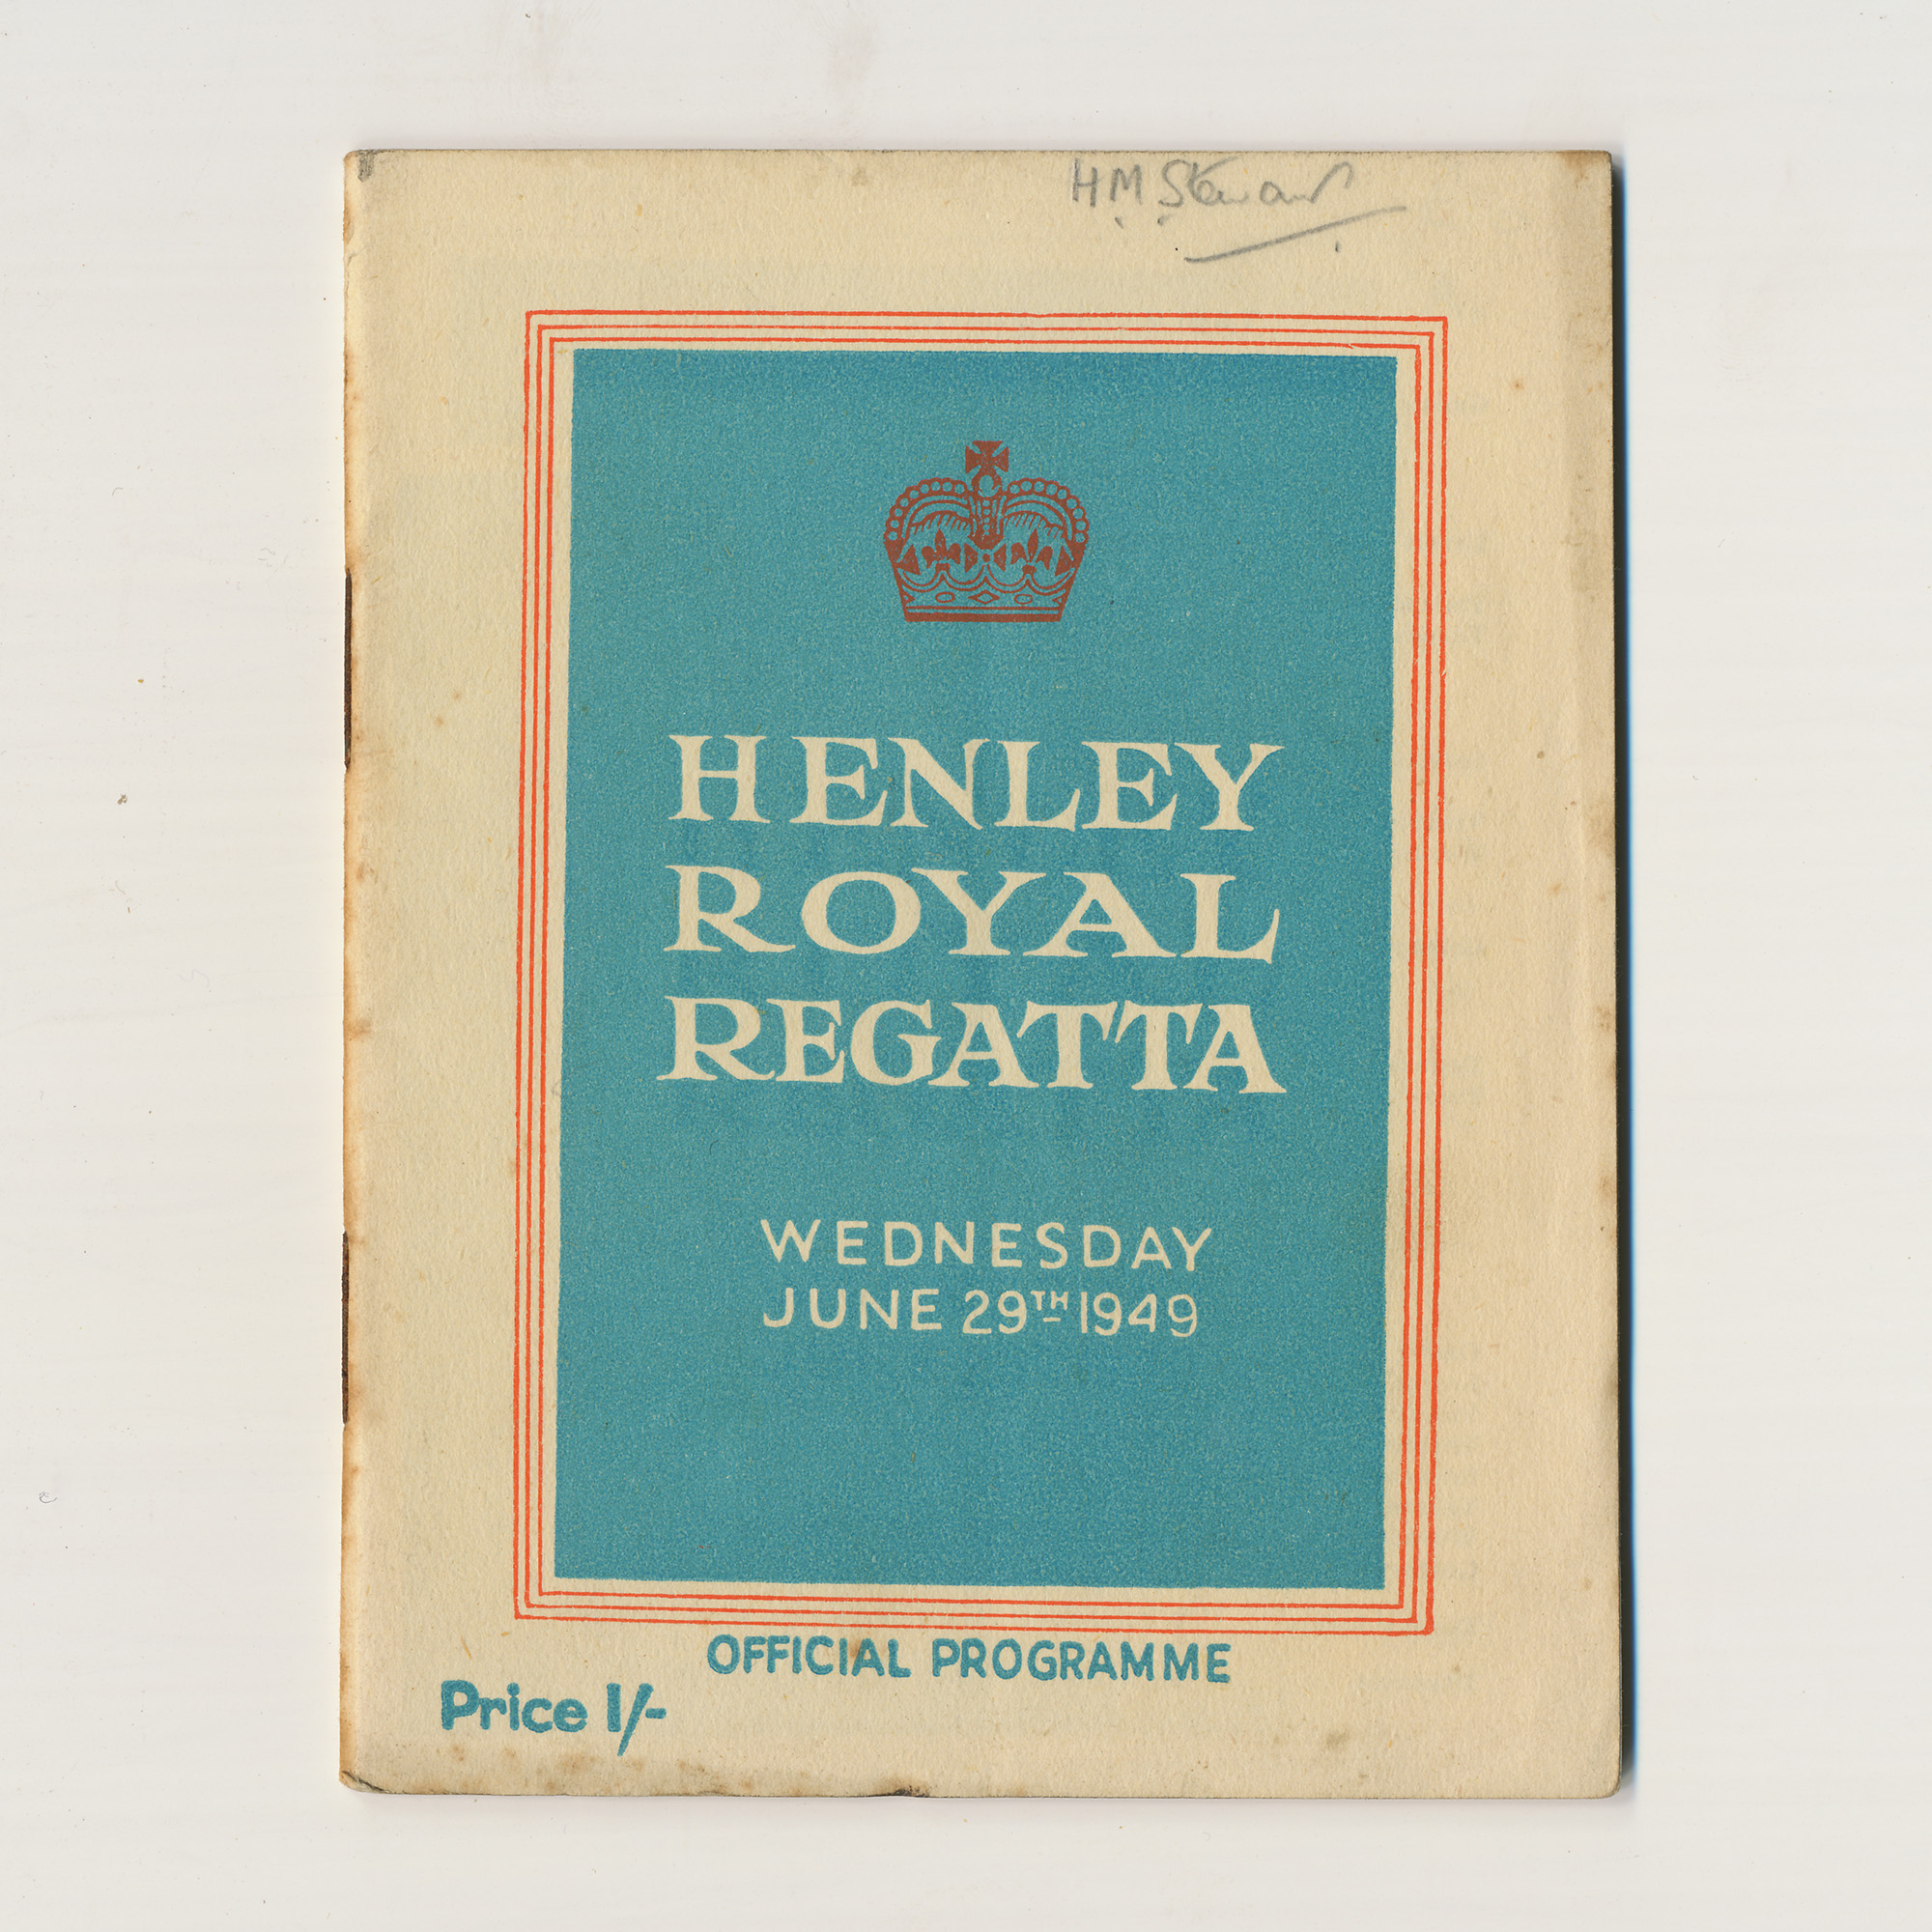 Henley Royal Regatta Official Programme - ,